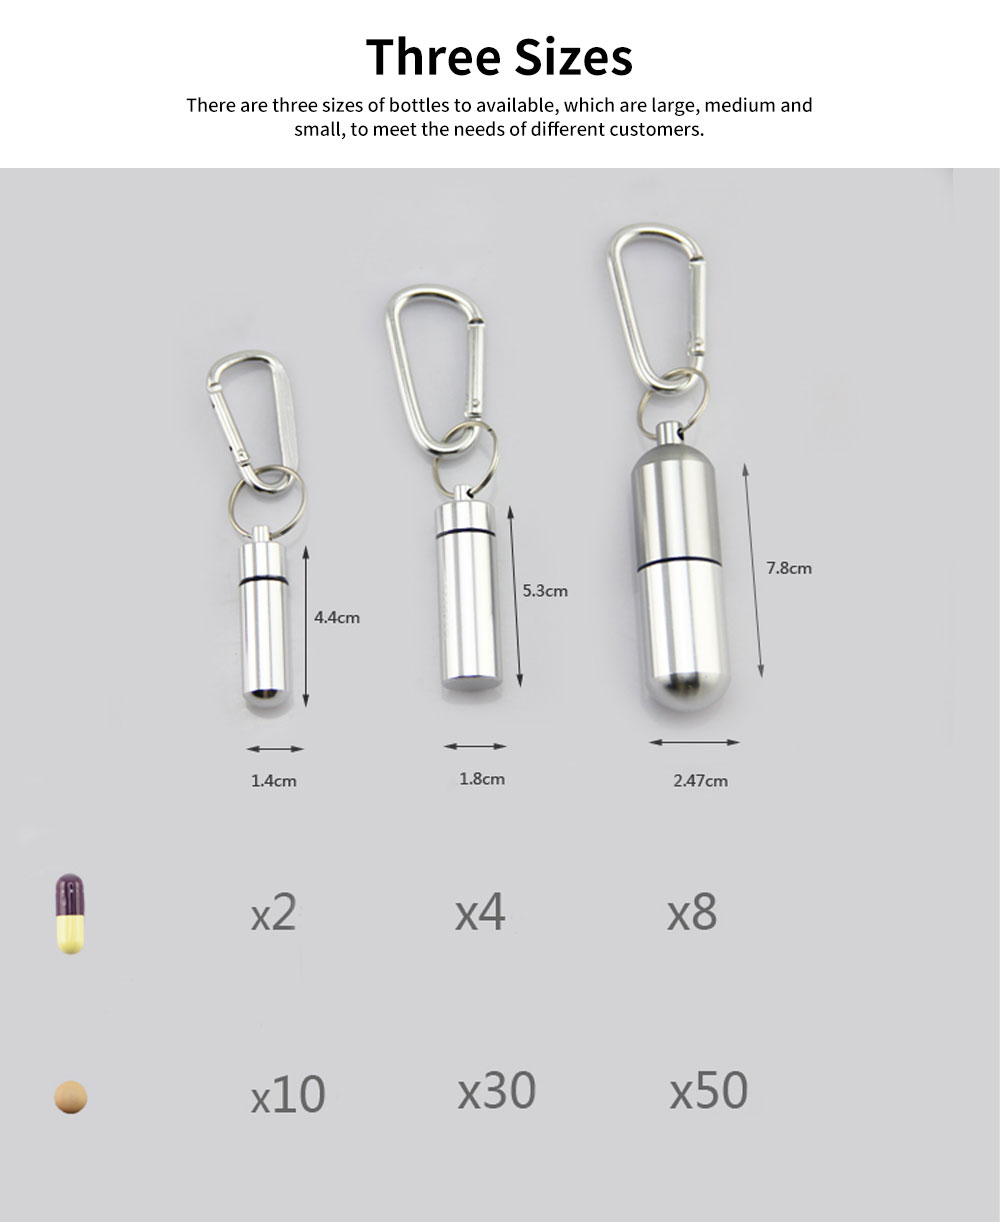 Aluminum Alloy Mini Pill Storage Bottle Waterproof Canister for Medicine Travel Business Trip One Week Small Storage Box 5